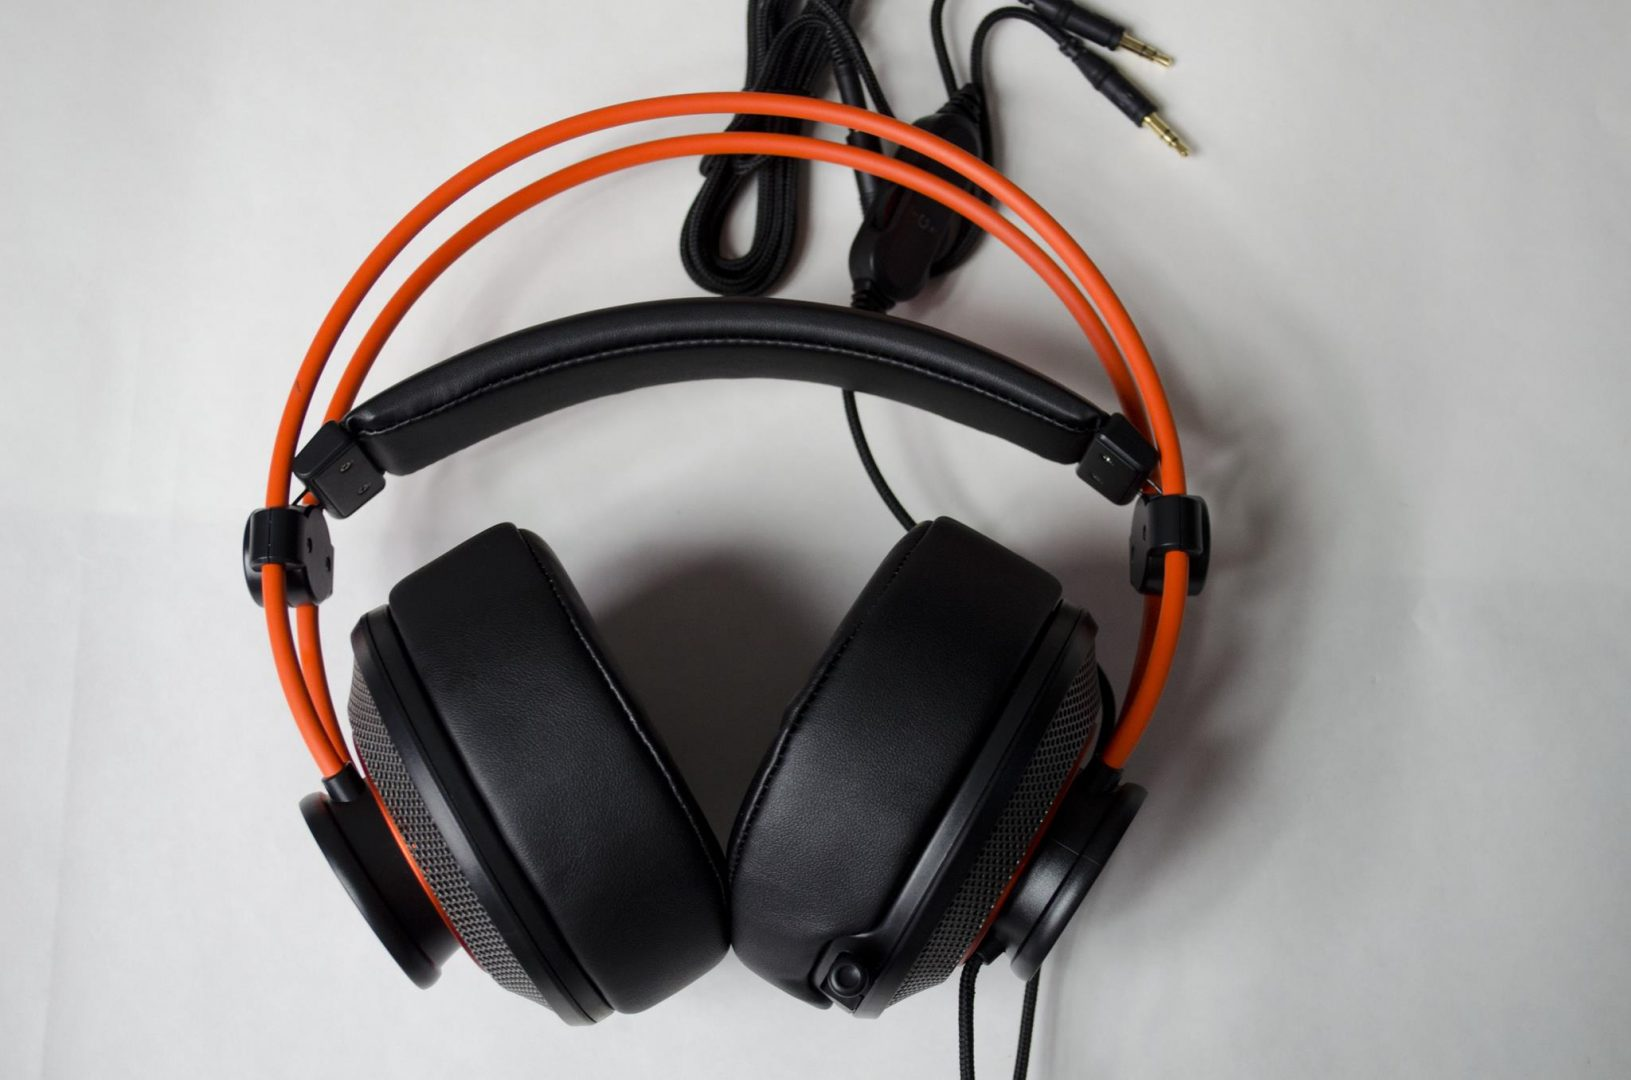 cougar immera headset review_8